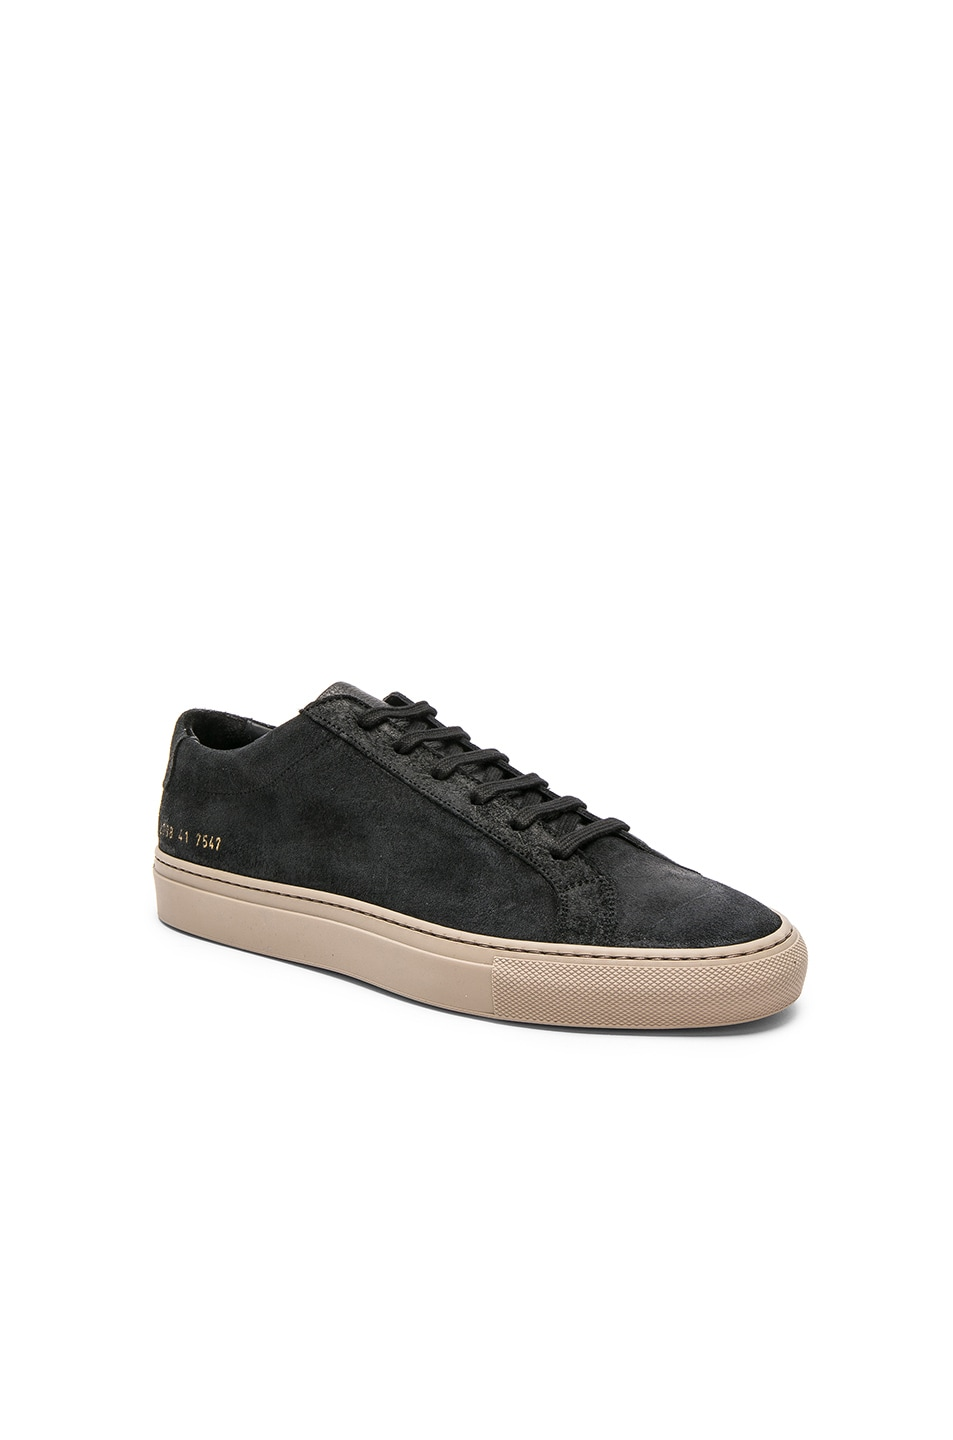 2e0a70cc66df Image 1 of Common Projects Waxed Suede Achilles Low in Black